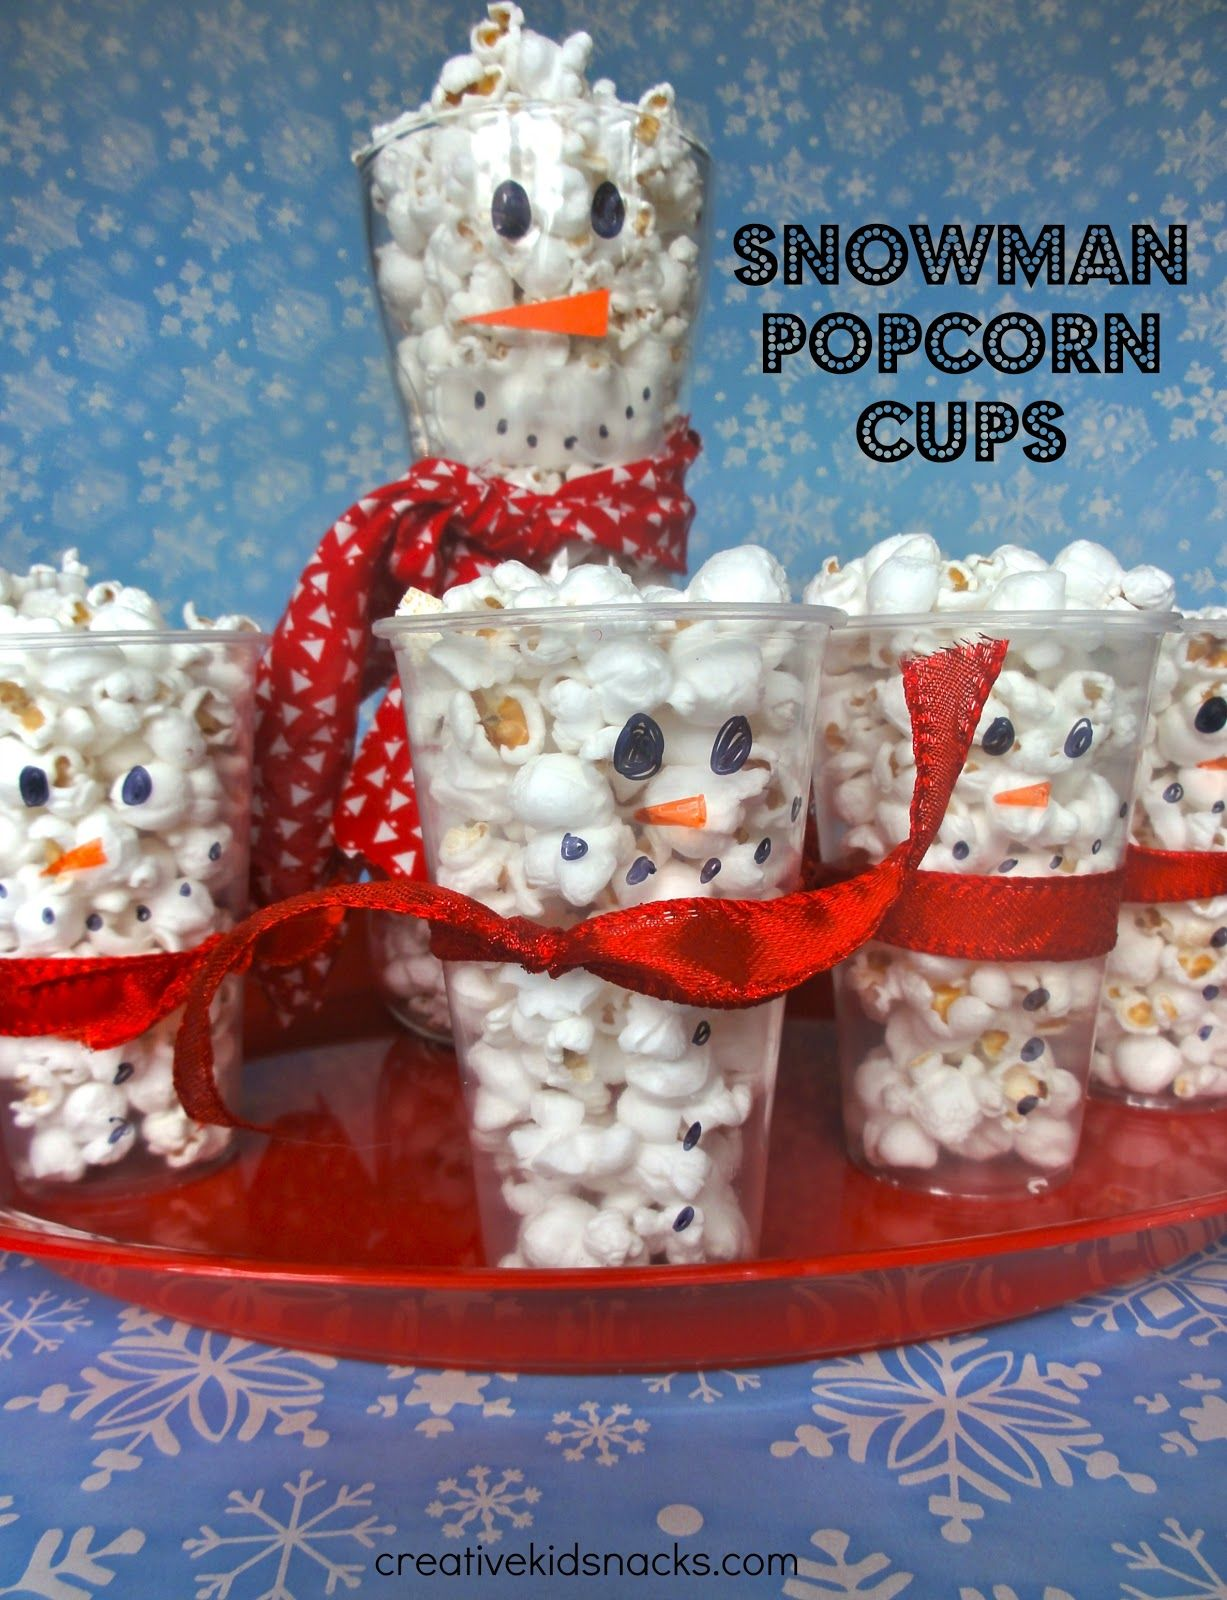 Kindergarten Christmas Party Ideas Part - 42: Creative Kid Snacks: Snowman Popcorn Cups For Christmas Movie Night